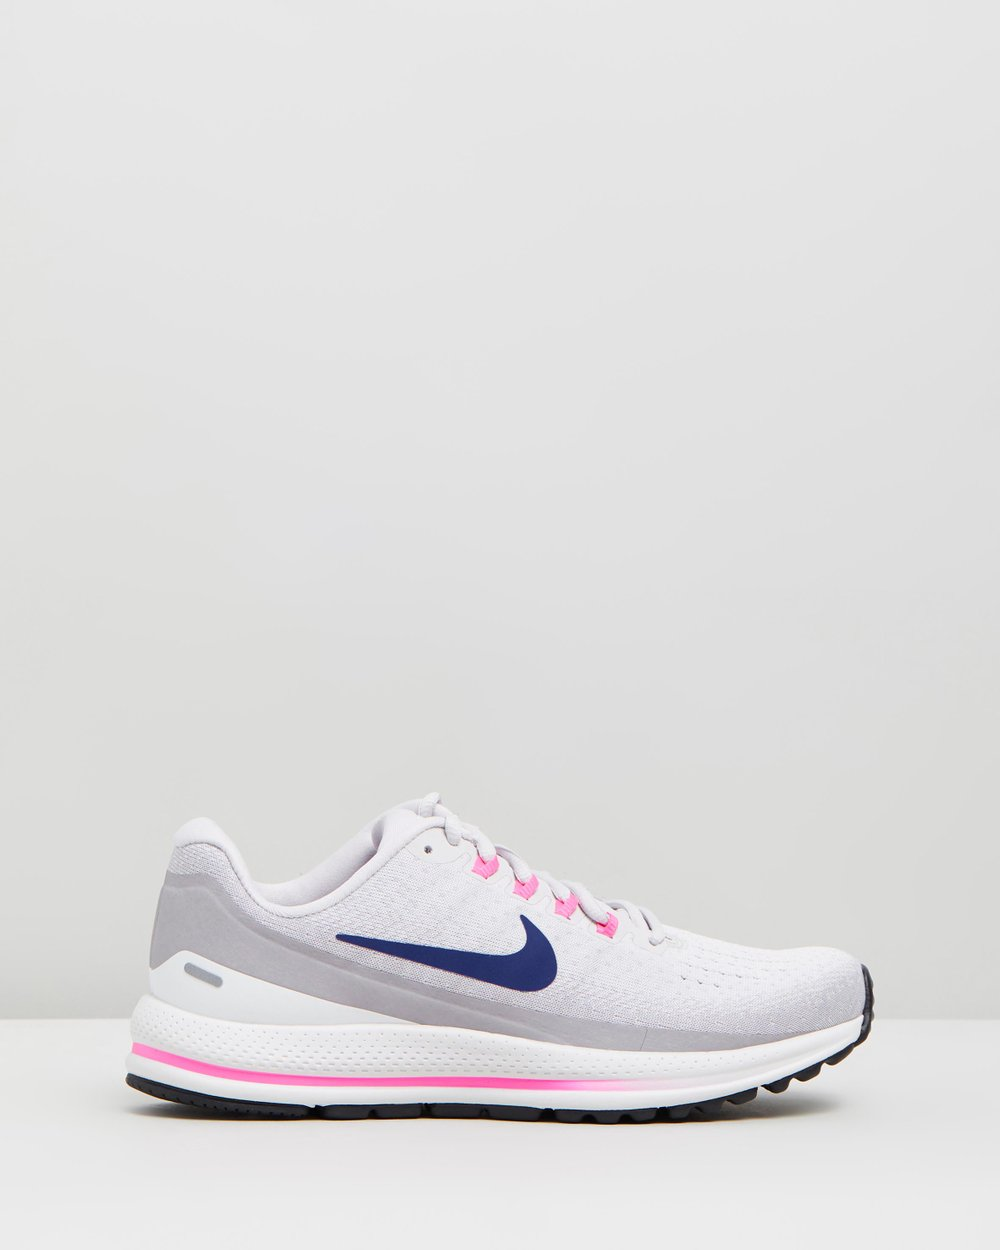 c99a31772ae41 Air Zoom Vomero 13 Running Shoes - Women s by Nike Online